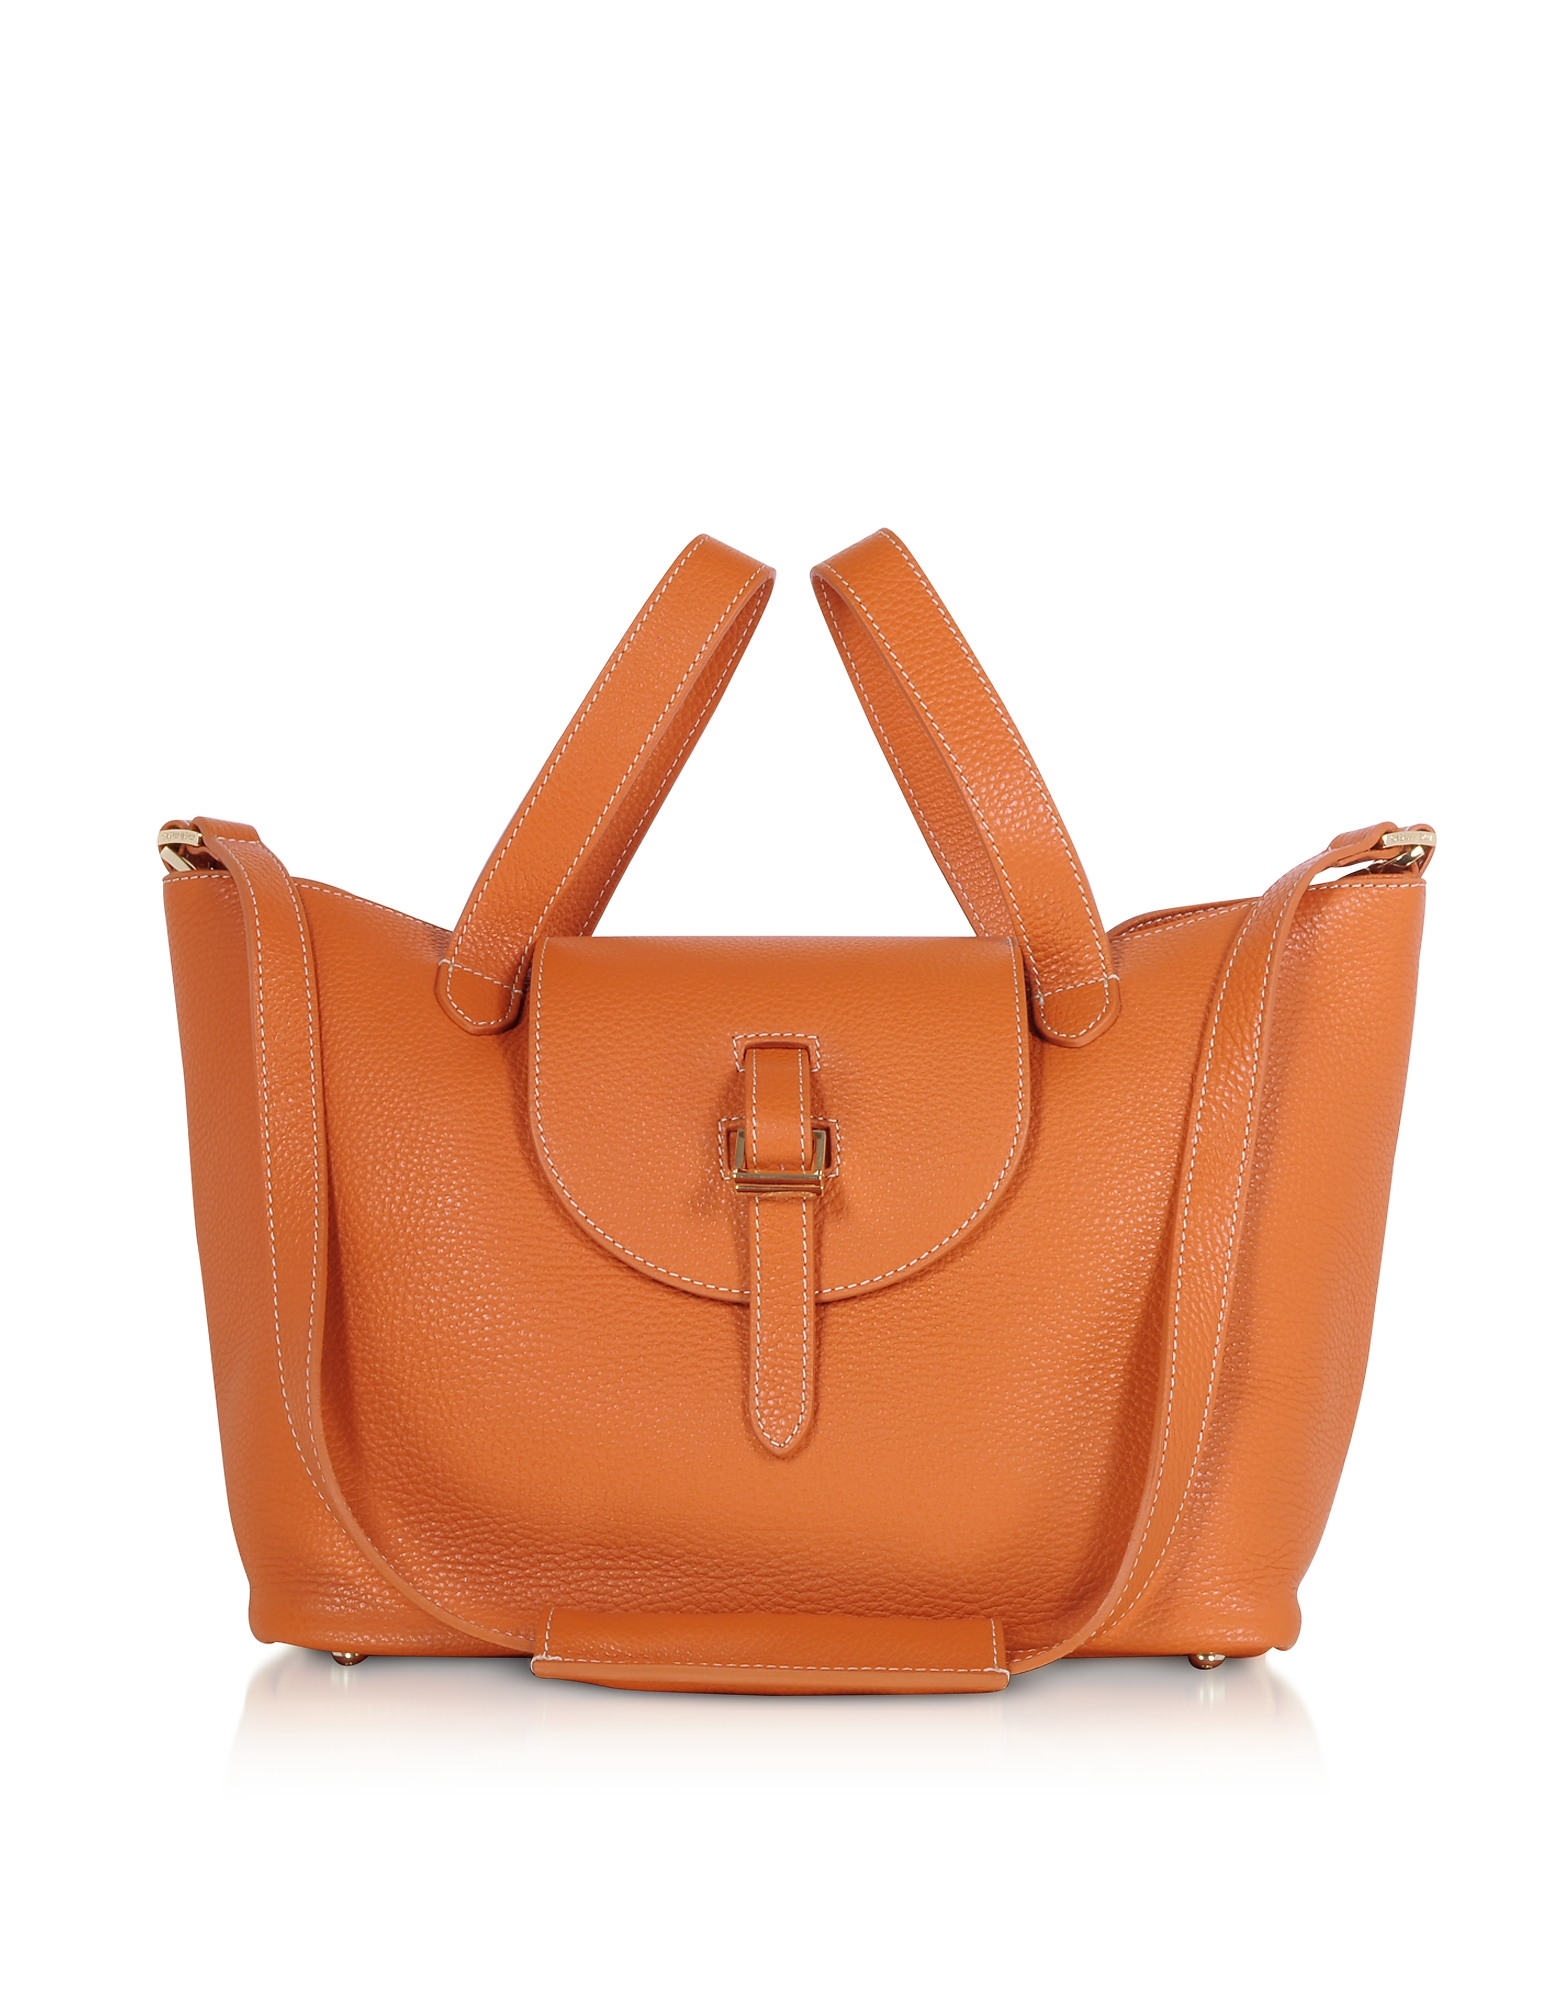 Thela Sunset Medium Satchel Bag